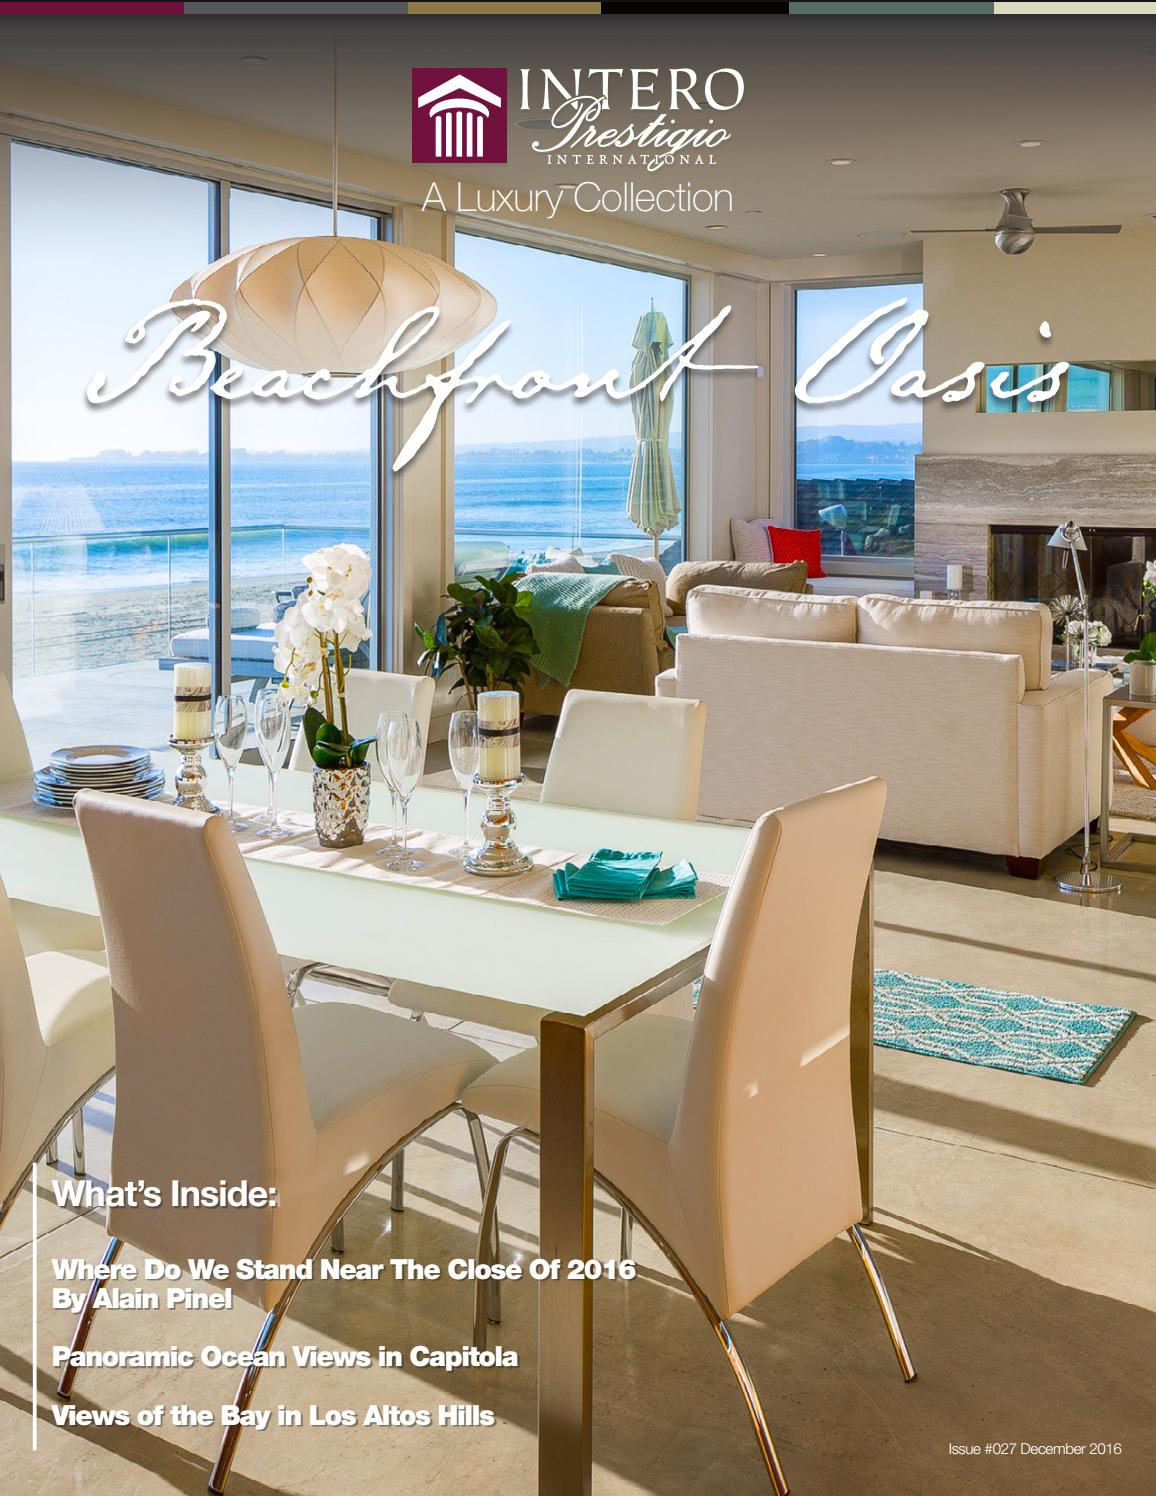 Intero Prestigio International Magazine | A Luxury Real Estate ...